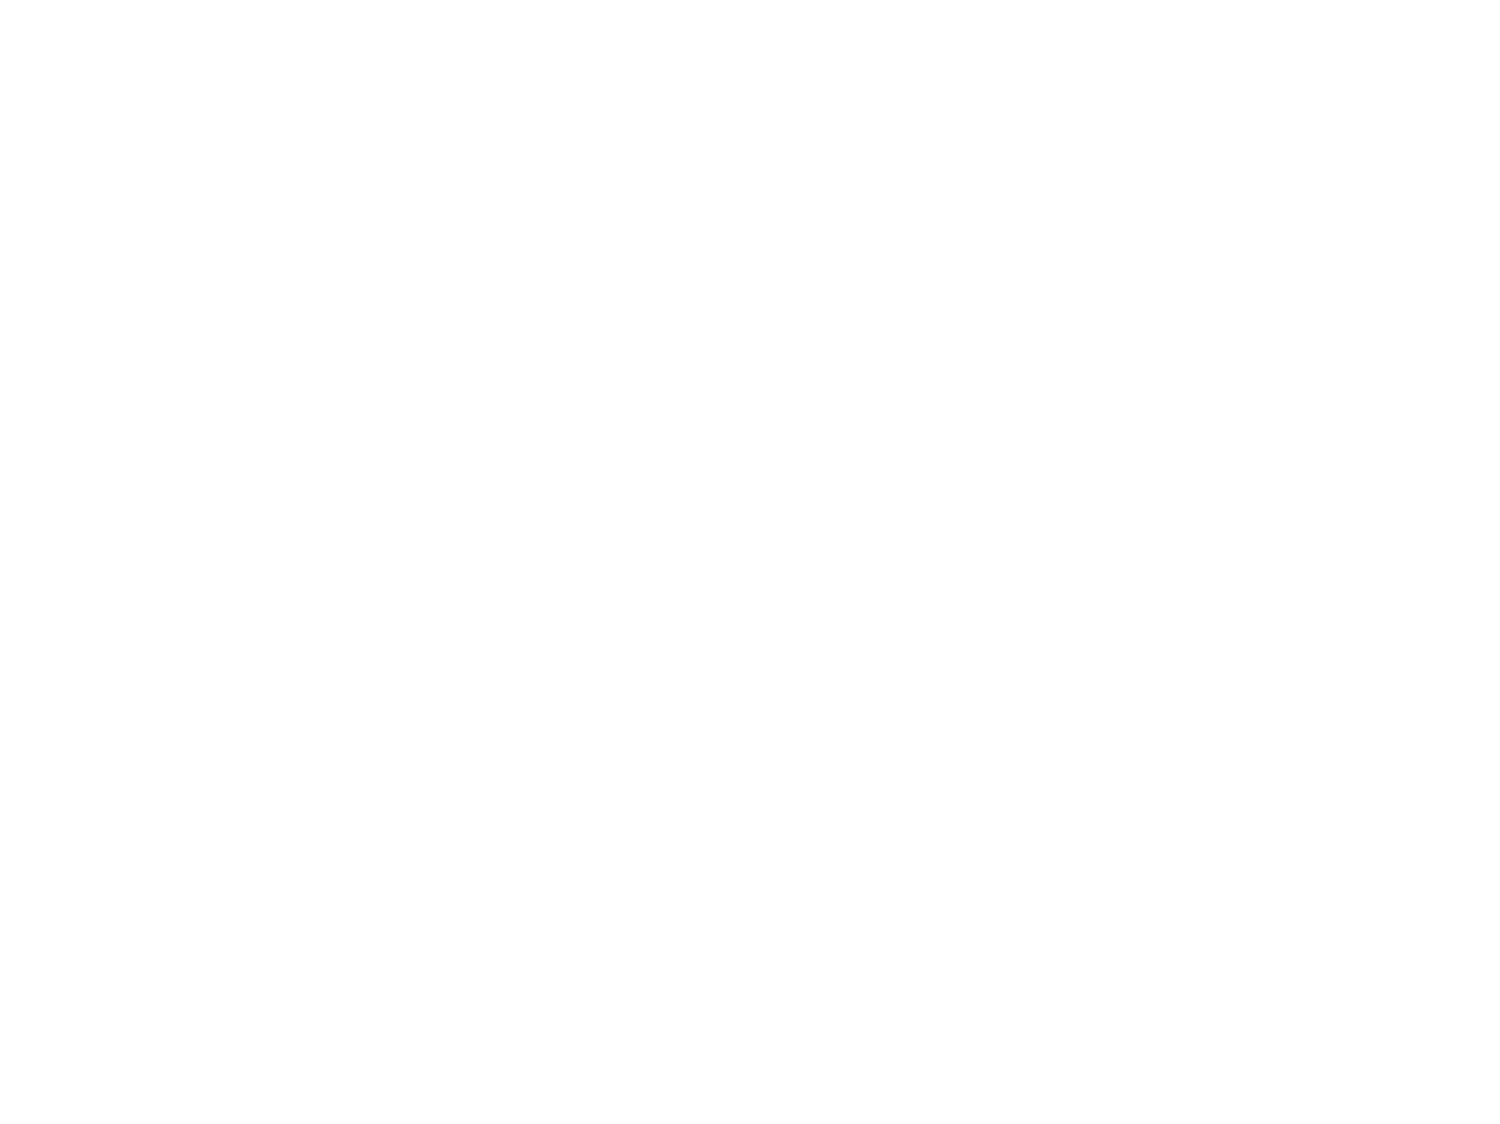 Sarah Winchester Official